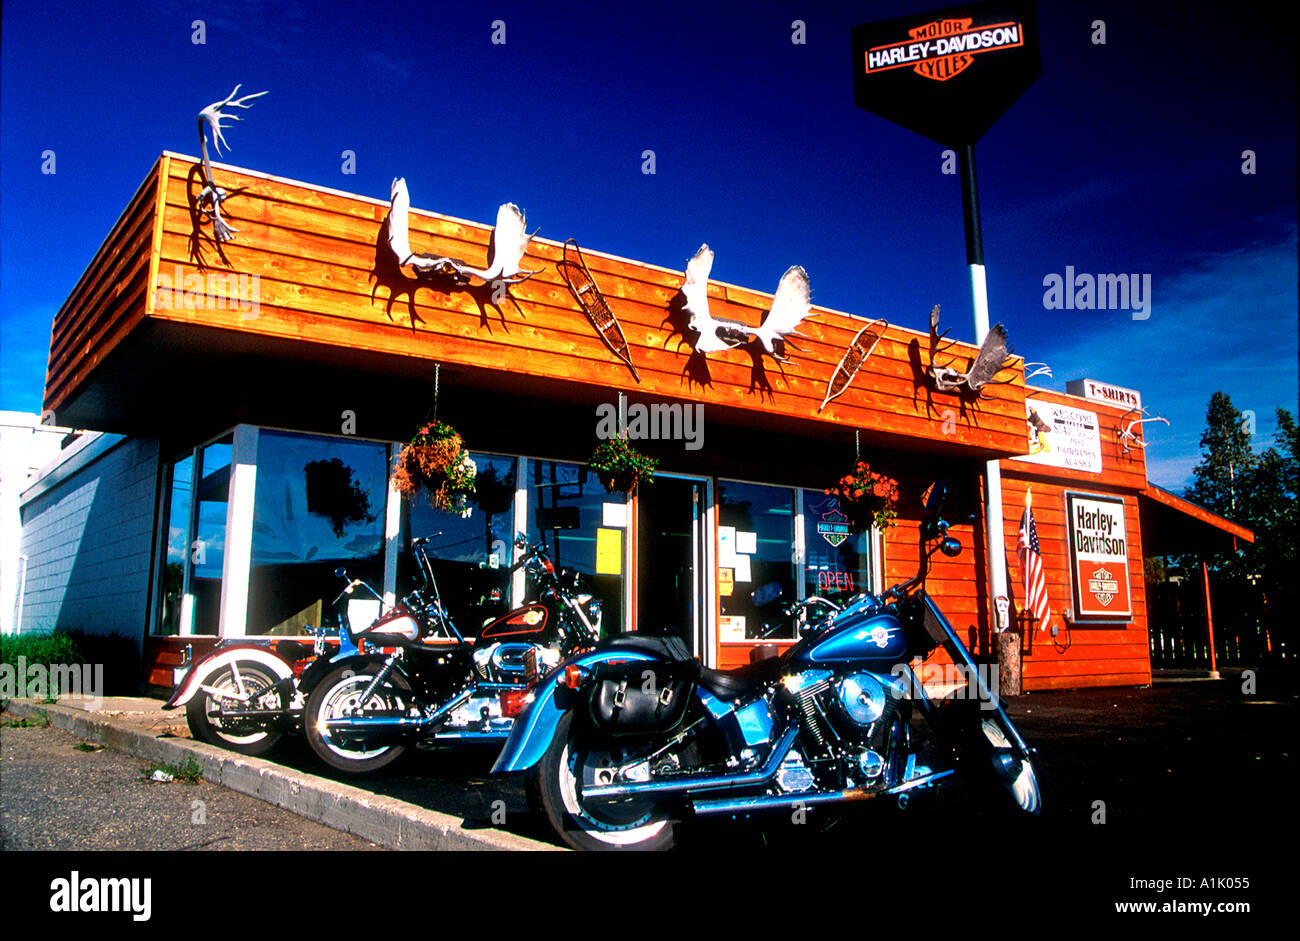 Harley Davidson Log: Most Northern Harley Davidson Dealer Fairbanks Alaska USA